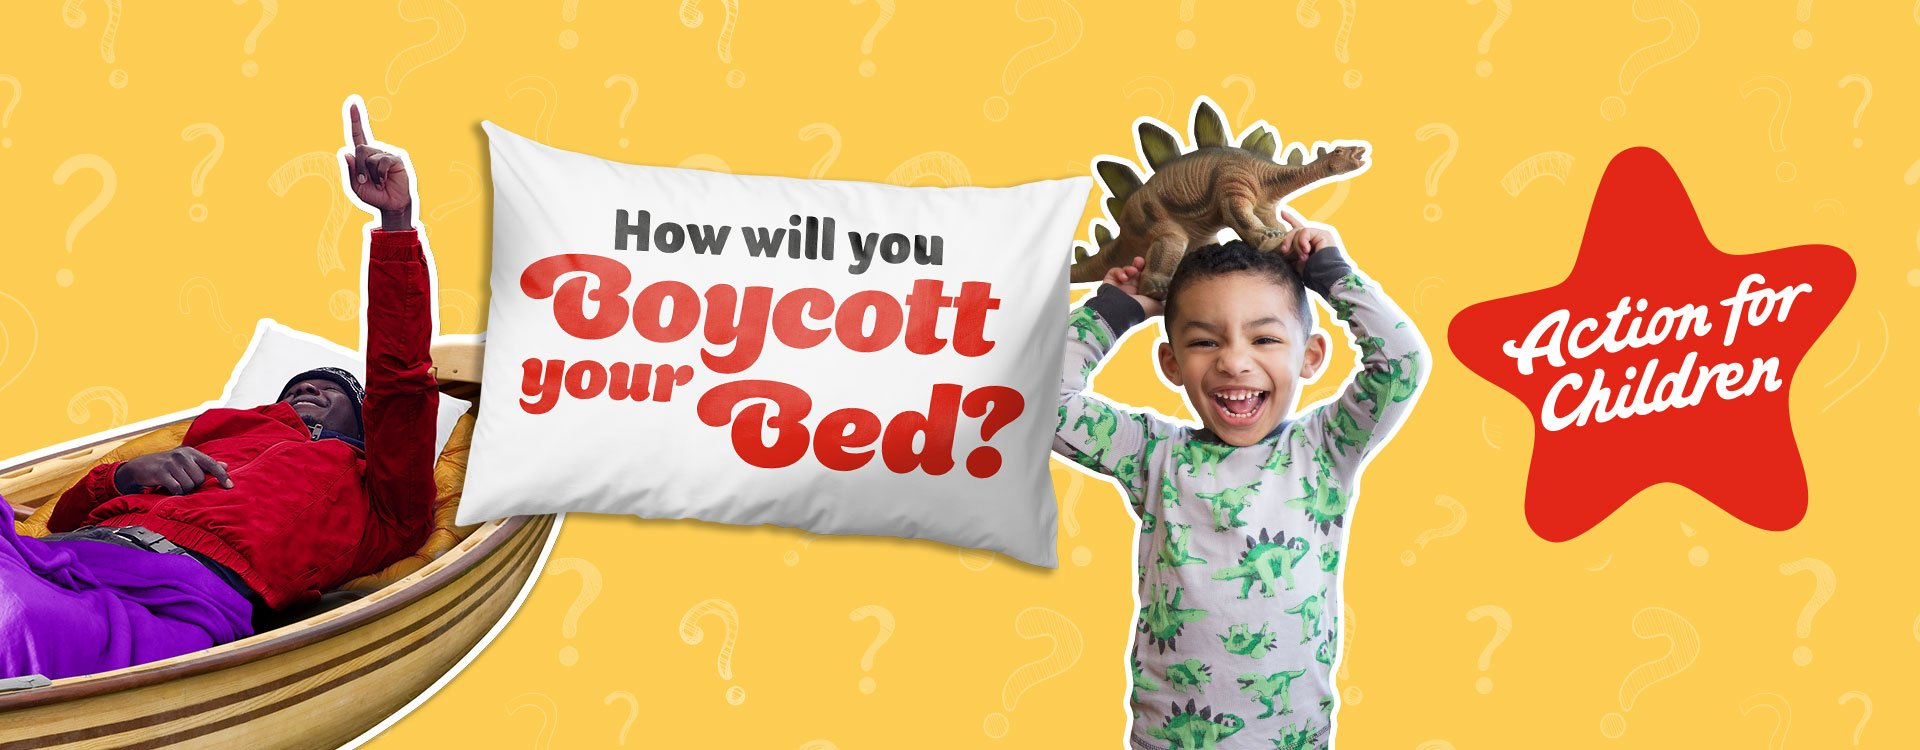 Boycott your Bed for  Action For Children